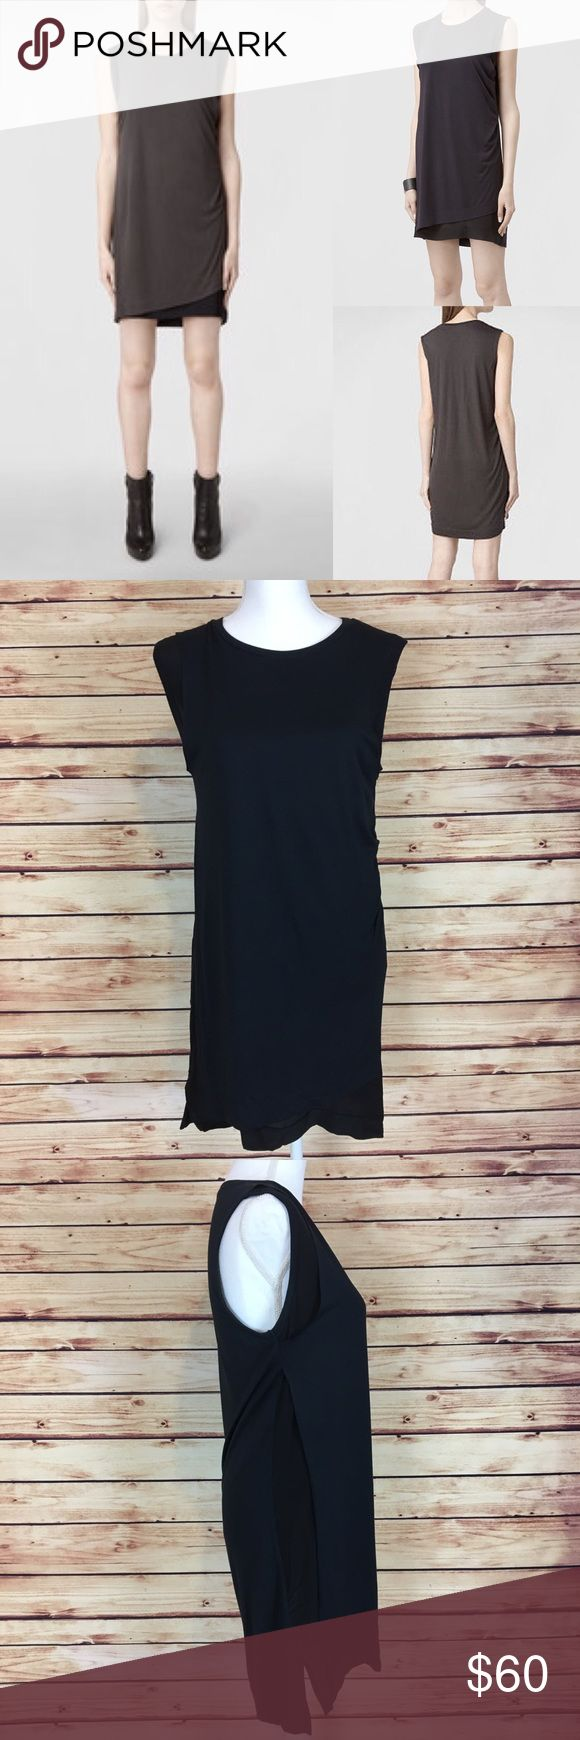 AllSaints Justine Layered Loose Fit Tank Dress AllSaints Justine sleeveless tank dress. Layered: top layer is a dark blue viscose material, almost like a t-shirt material, and the bottom layer is black 100% silk. US size 6. Excellent preowned condition with no flaws. The stock photo shows the charcoal and black version of this dress and is just for styling purposes. The actual dress is dark blue and black. All Saints Dresses